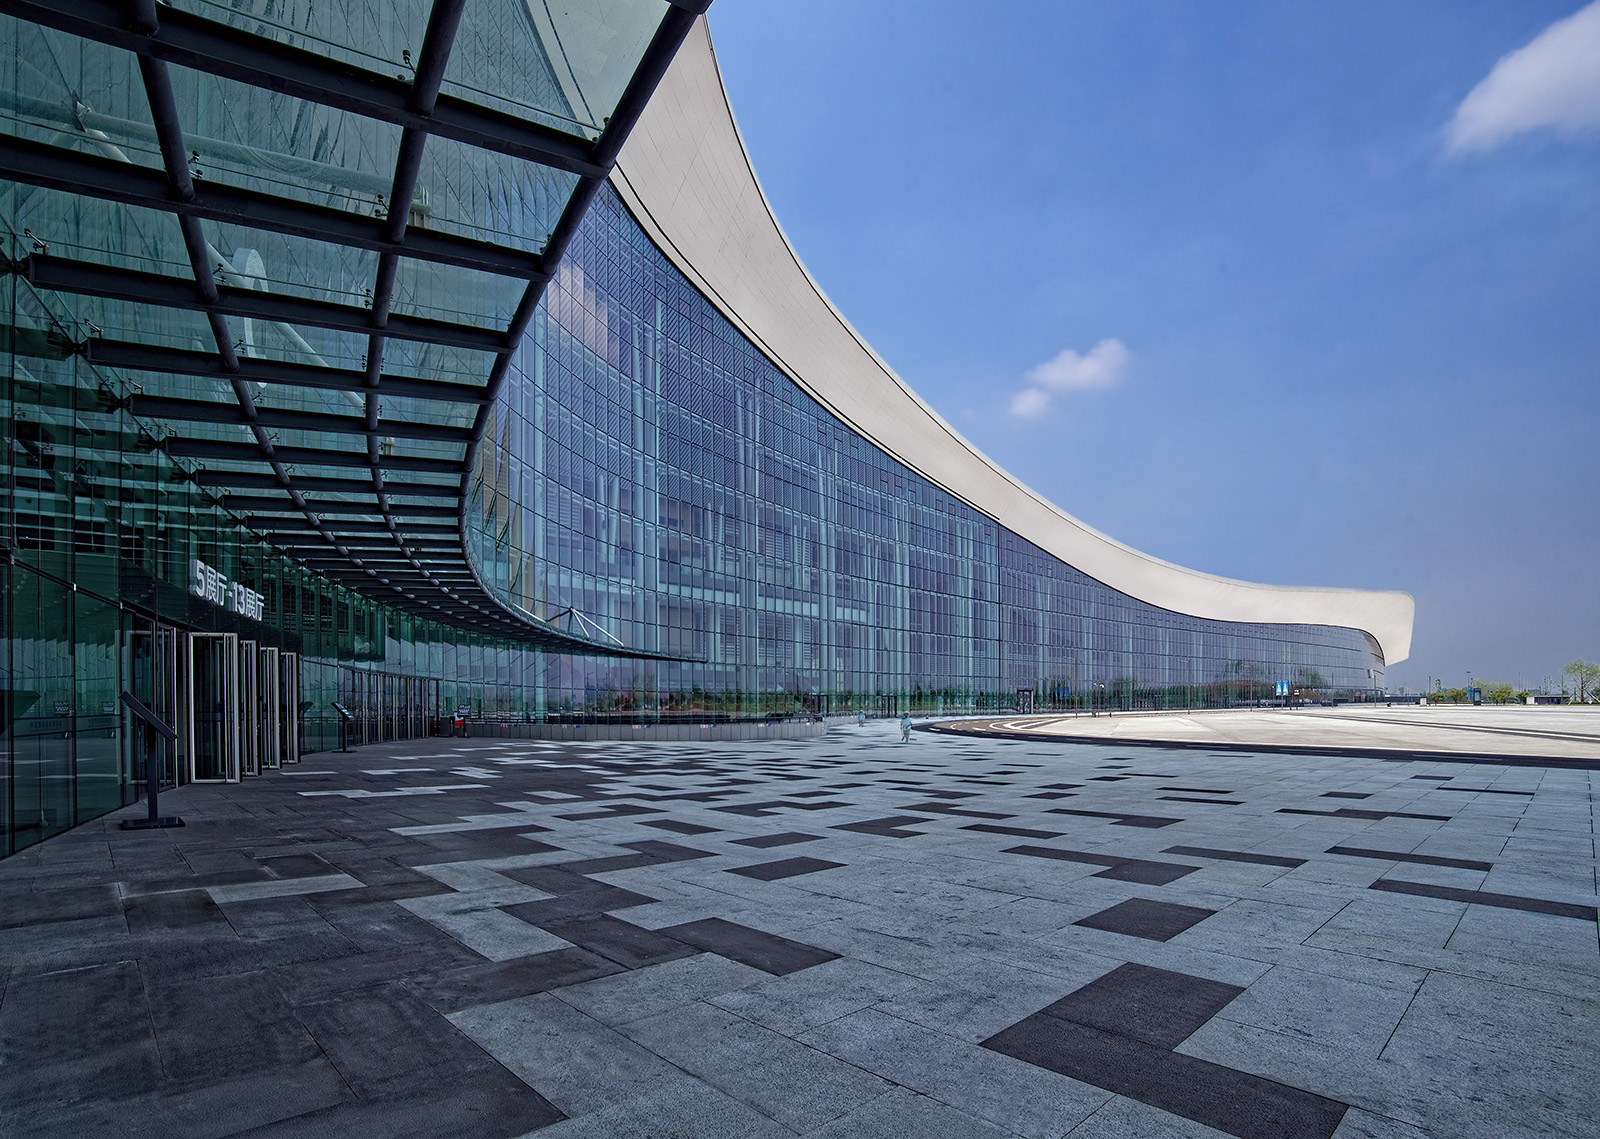 Interior and exterior architectural photography for architects large scale projects including conference centers exhibition centers in China, Asia, and the Middle East by Paul Dingman, architectural photographer